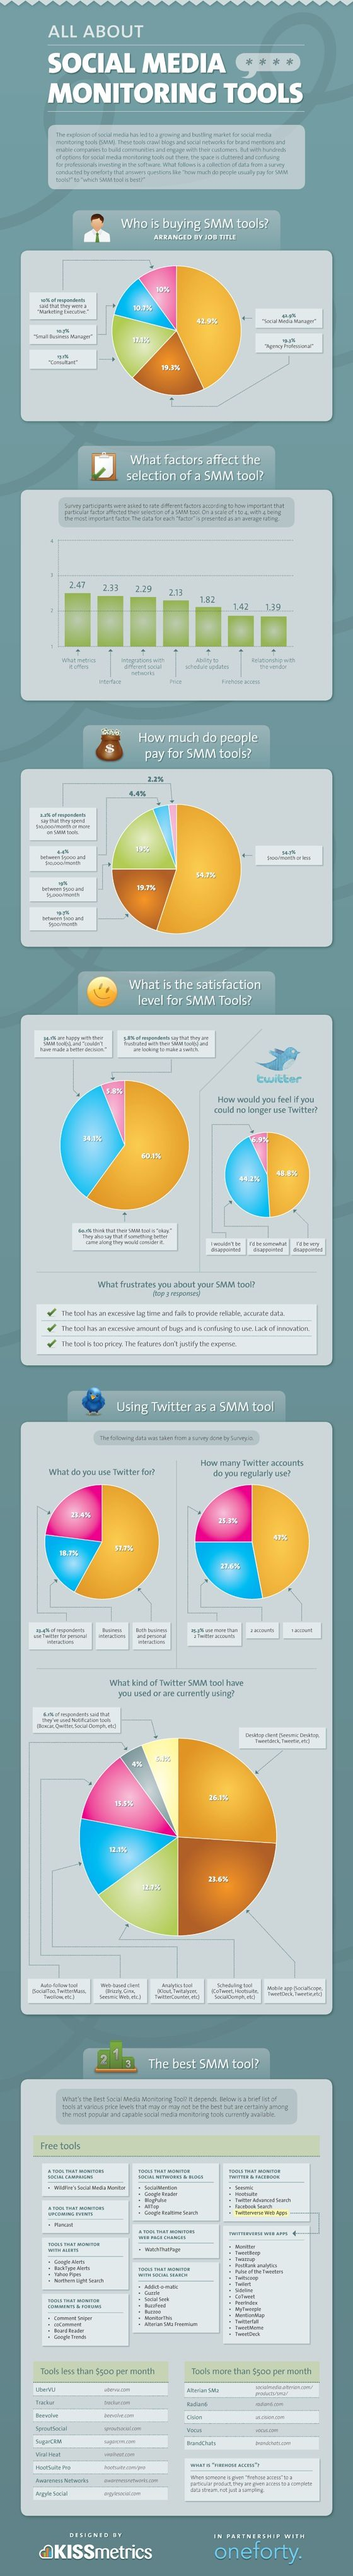 All About Social Media Monitoring Tools - Infographic